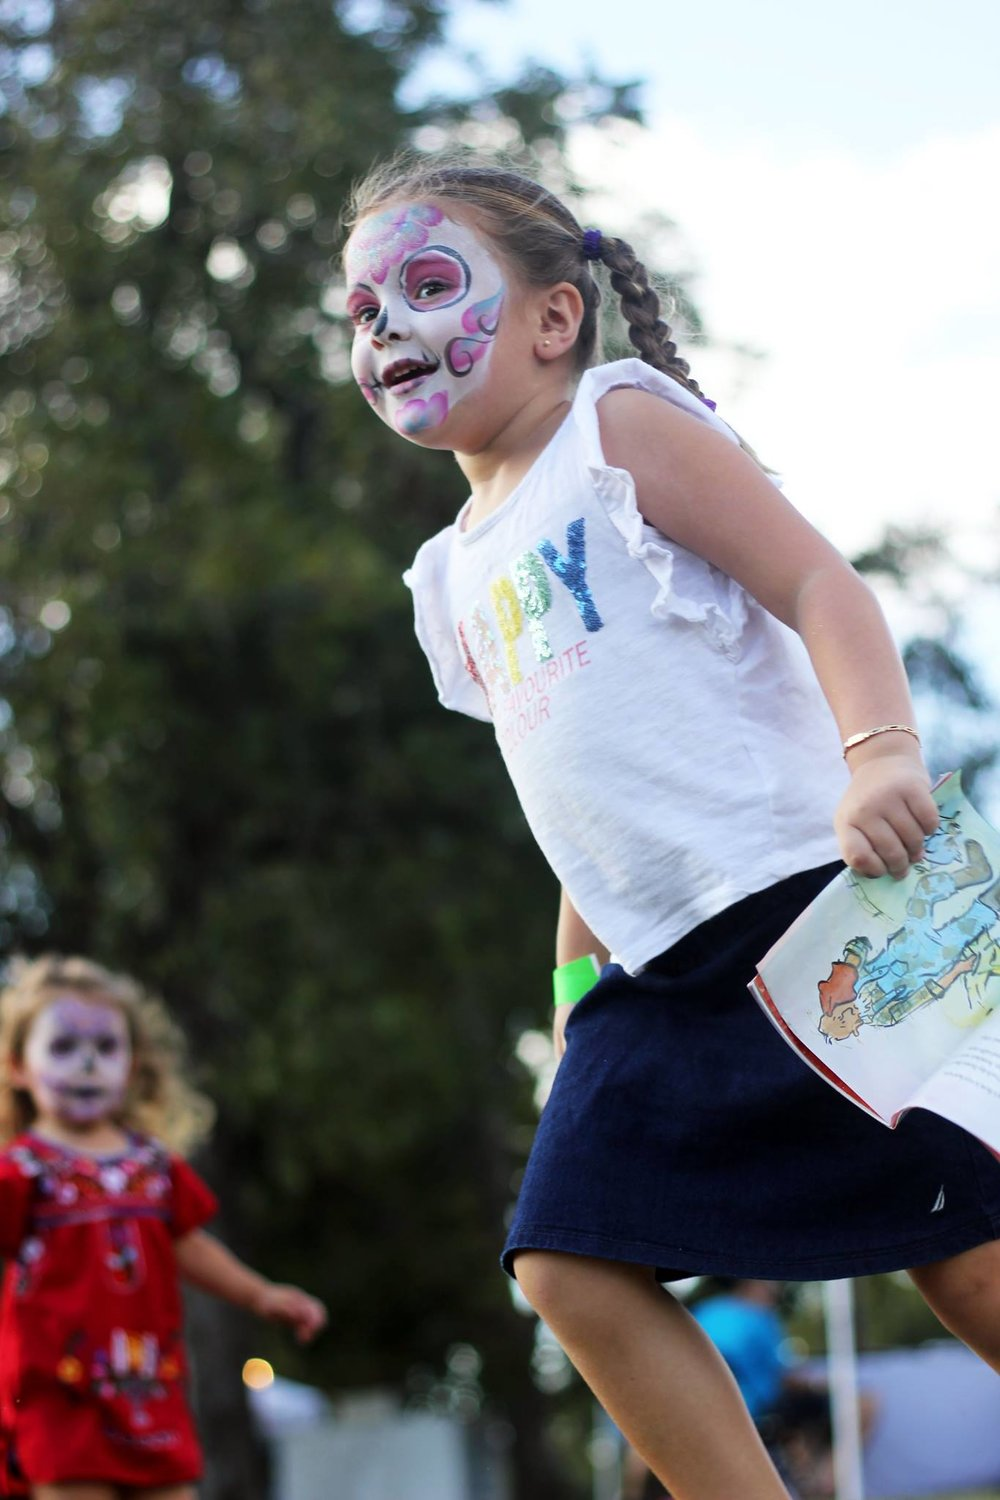 Two children run around after getting their faces painted.